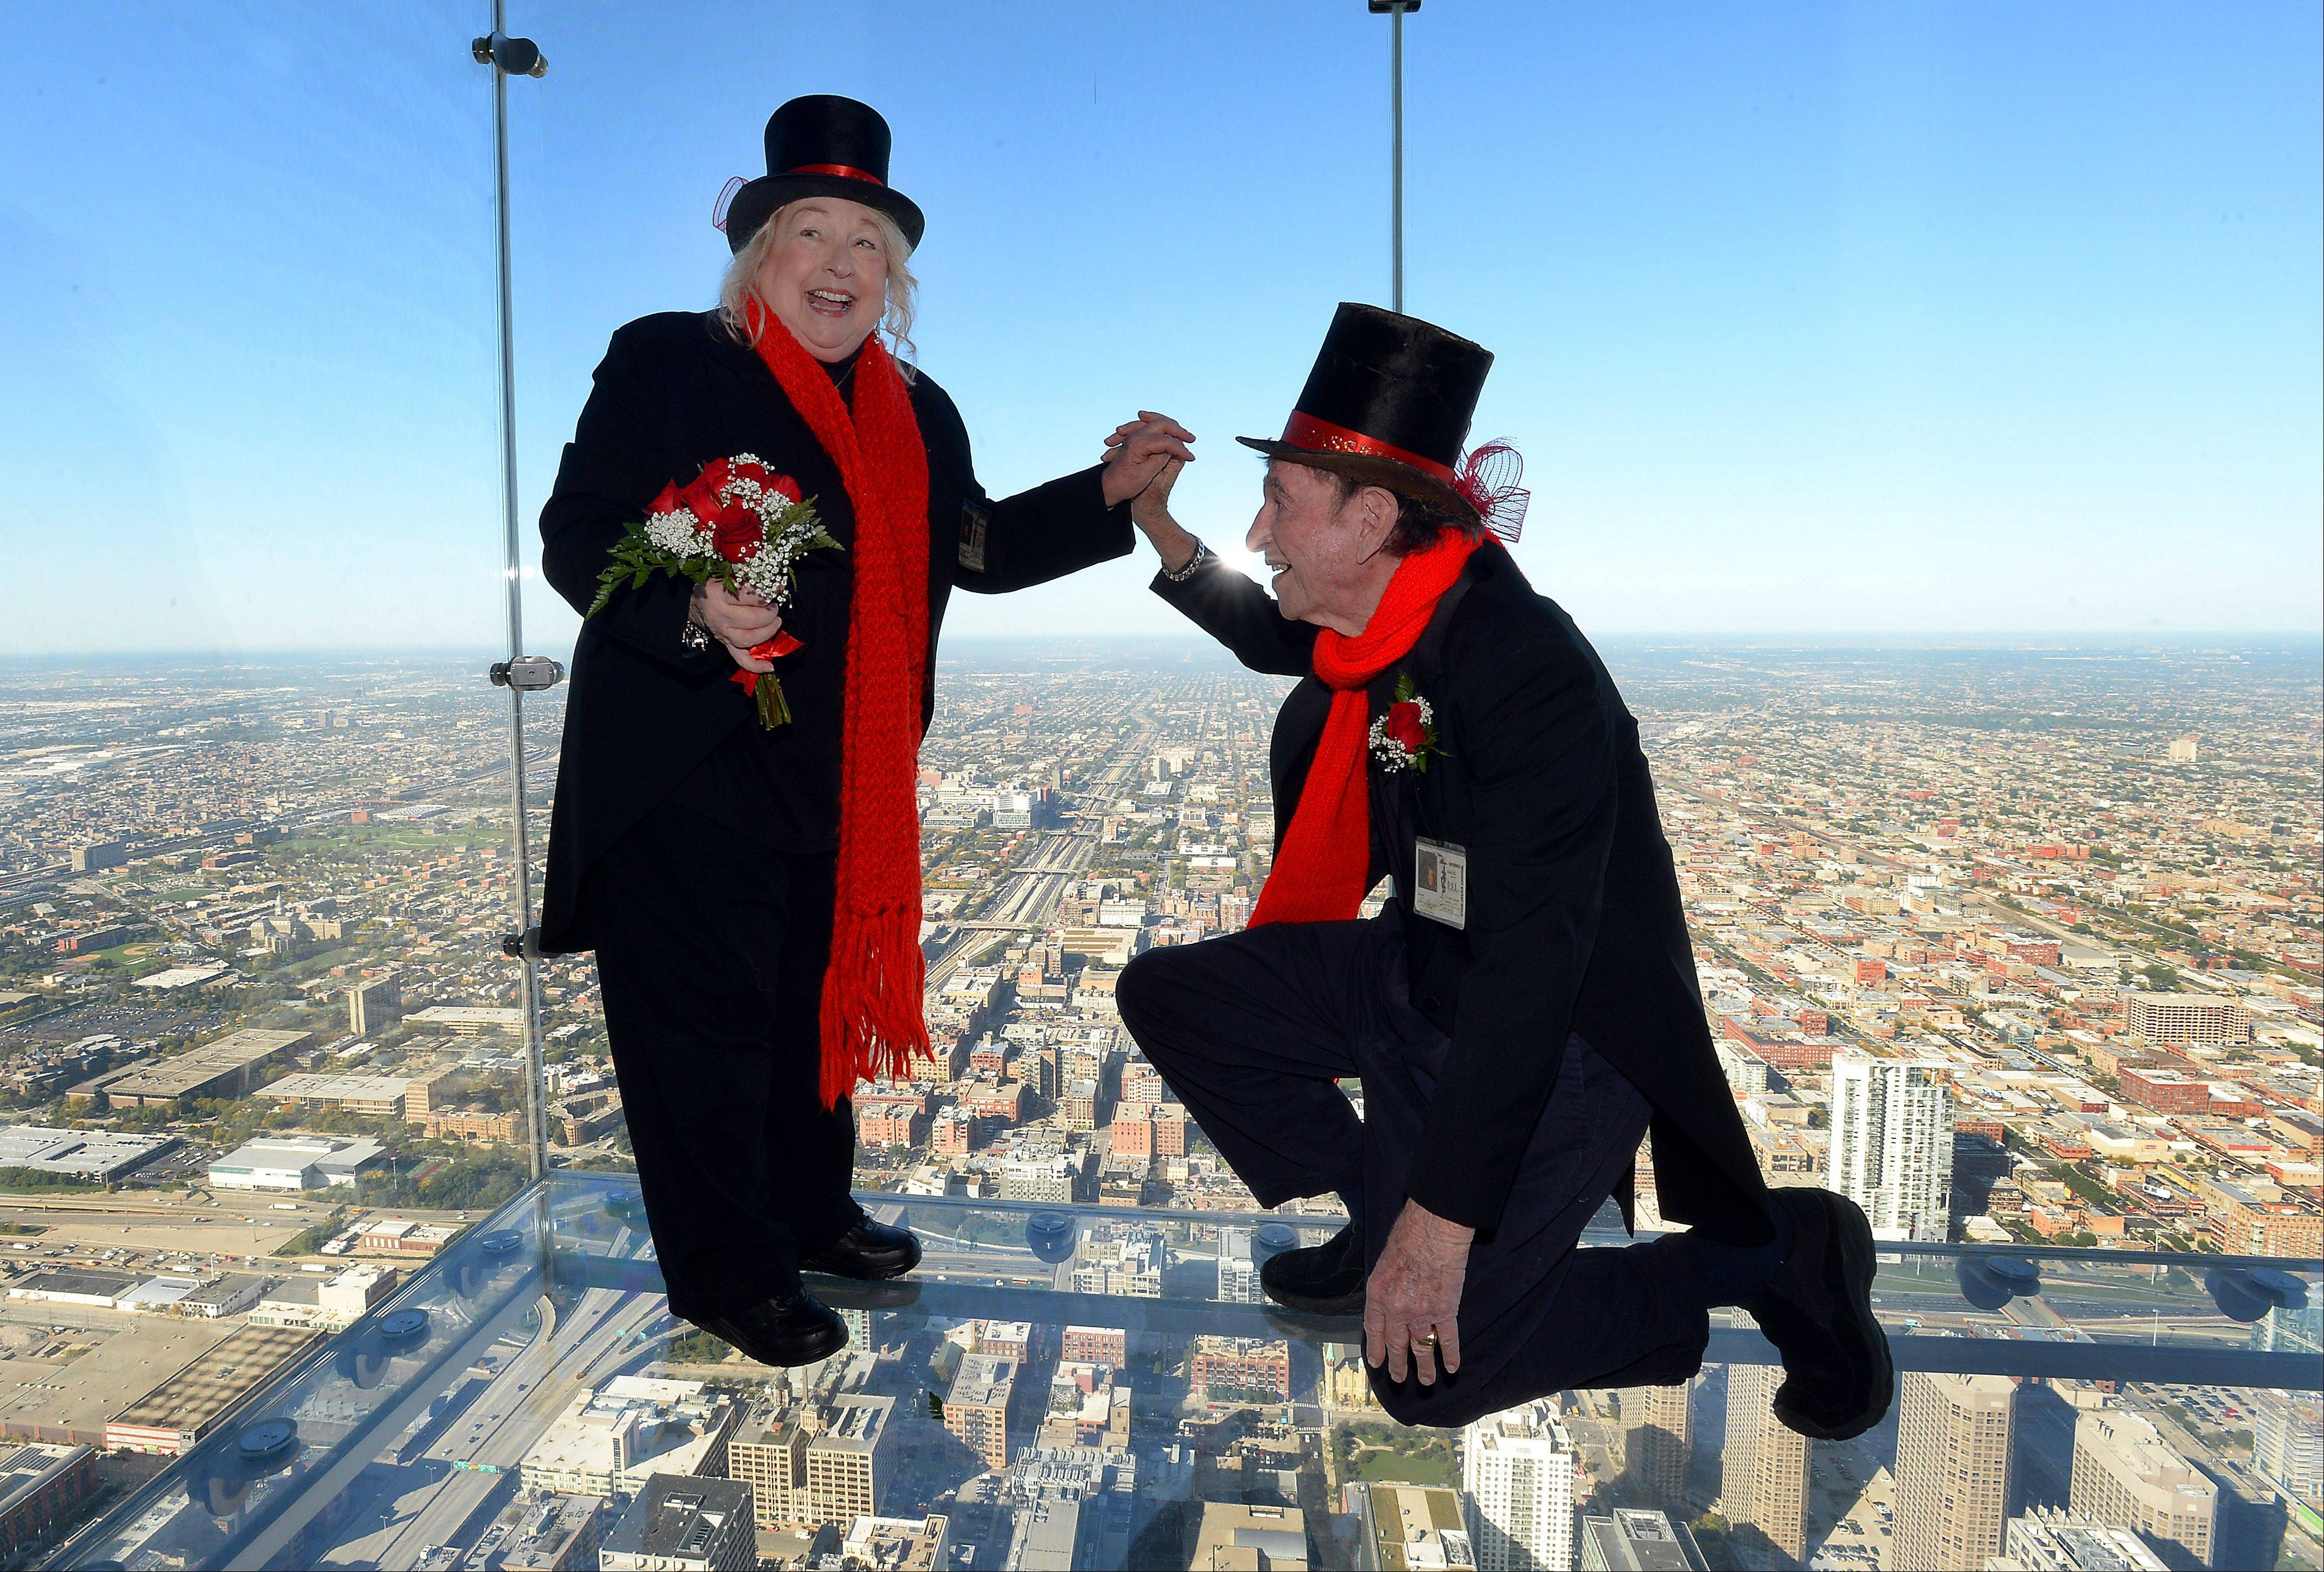 Still able to sweep each other off their feet after 35 years of marriage, Roselle chimney sweeps David and Dee Stoll renew their wedding vows from the Ledge of the Skydeck of the Willis Tower.